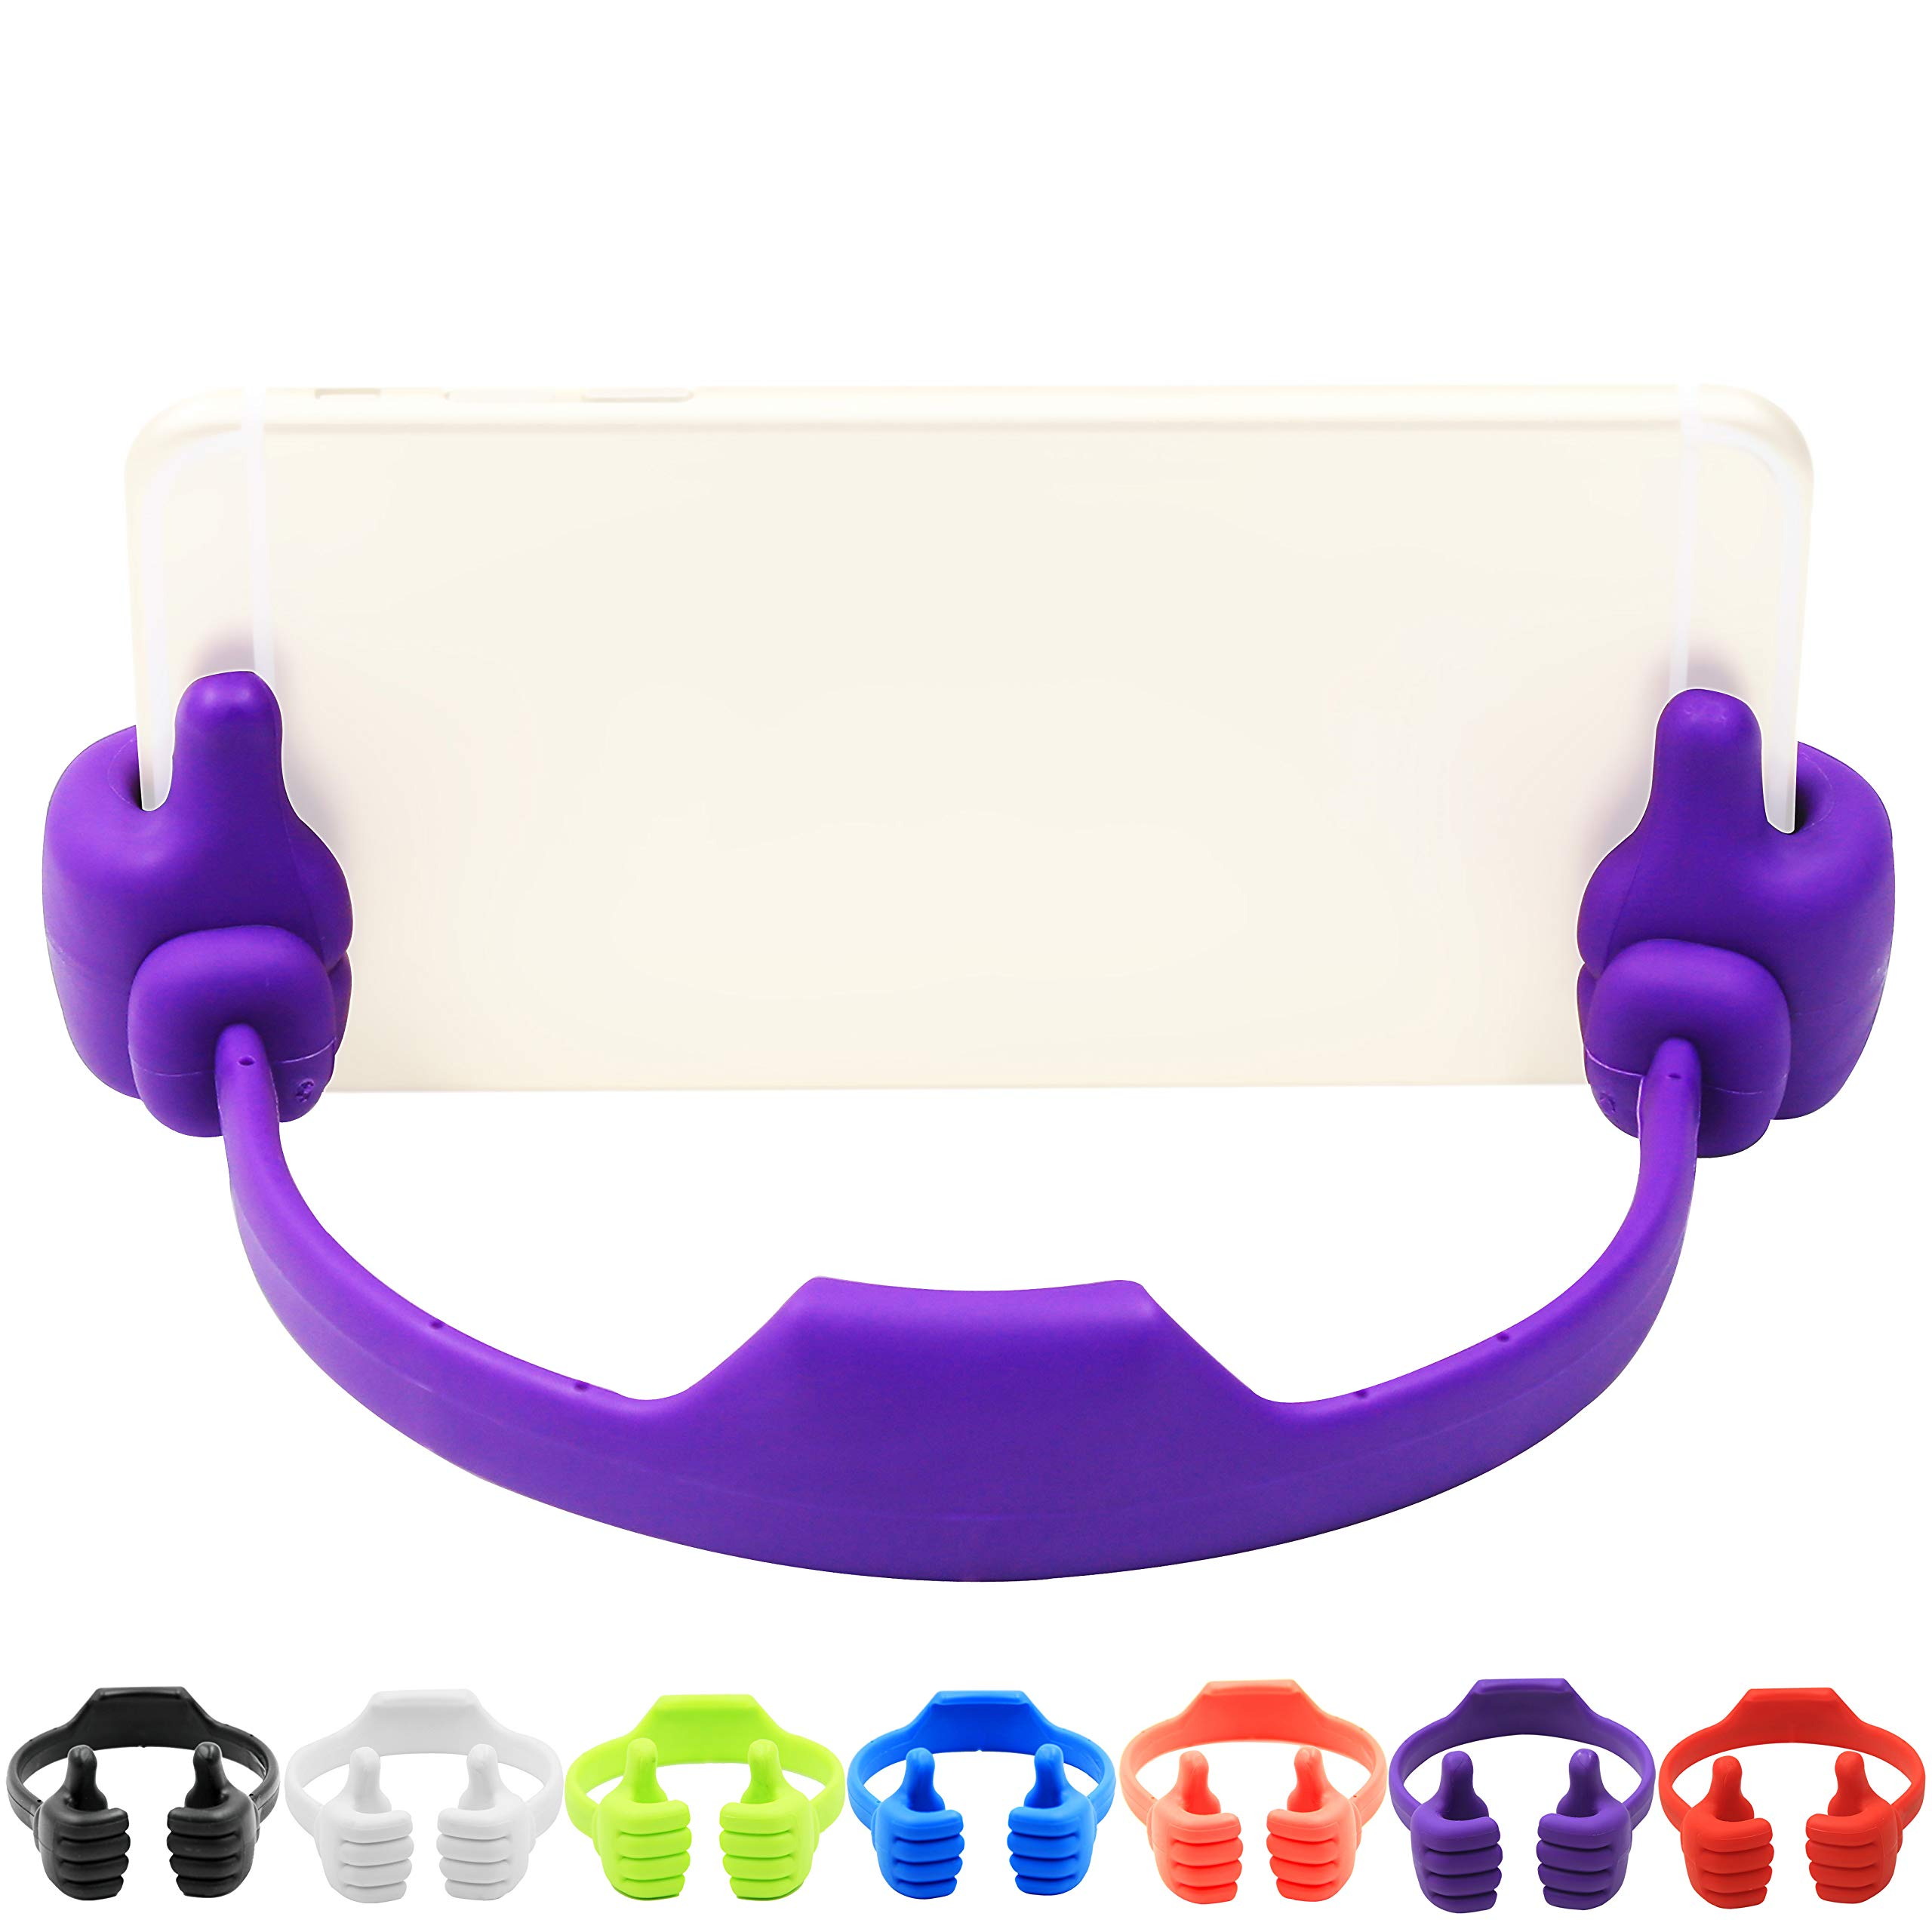 7Pack Thumbs-up Cell Phone Stand, Honsky Universal Flexible Multi-angle Cute Desk Desktop Phone Holder, Compatible with iPhone iPad Samsung Android Switch Nintendo Tablet, Assorted Colors, Bundle